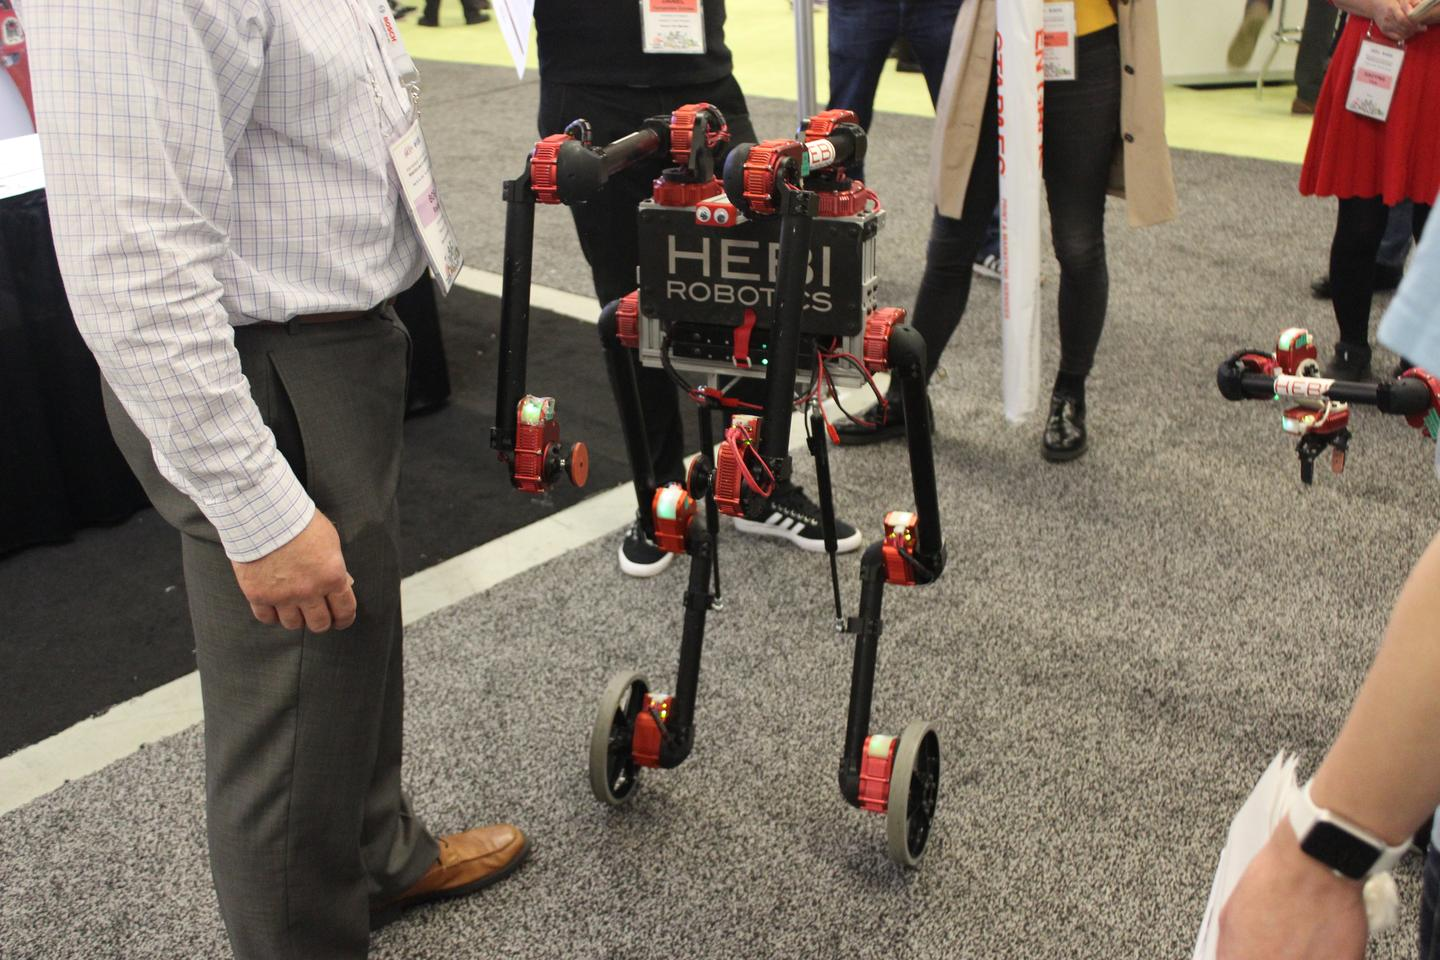 Available as an assemble-it-yourself kit, this machine from HEBIRobotics uses 14 interconnected actuators that control position, torque and velocity, allowing the robot to self-balance itself on two wheels